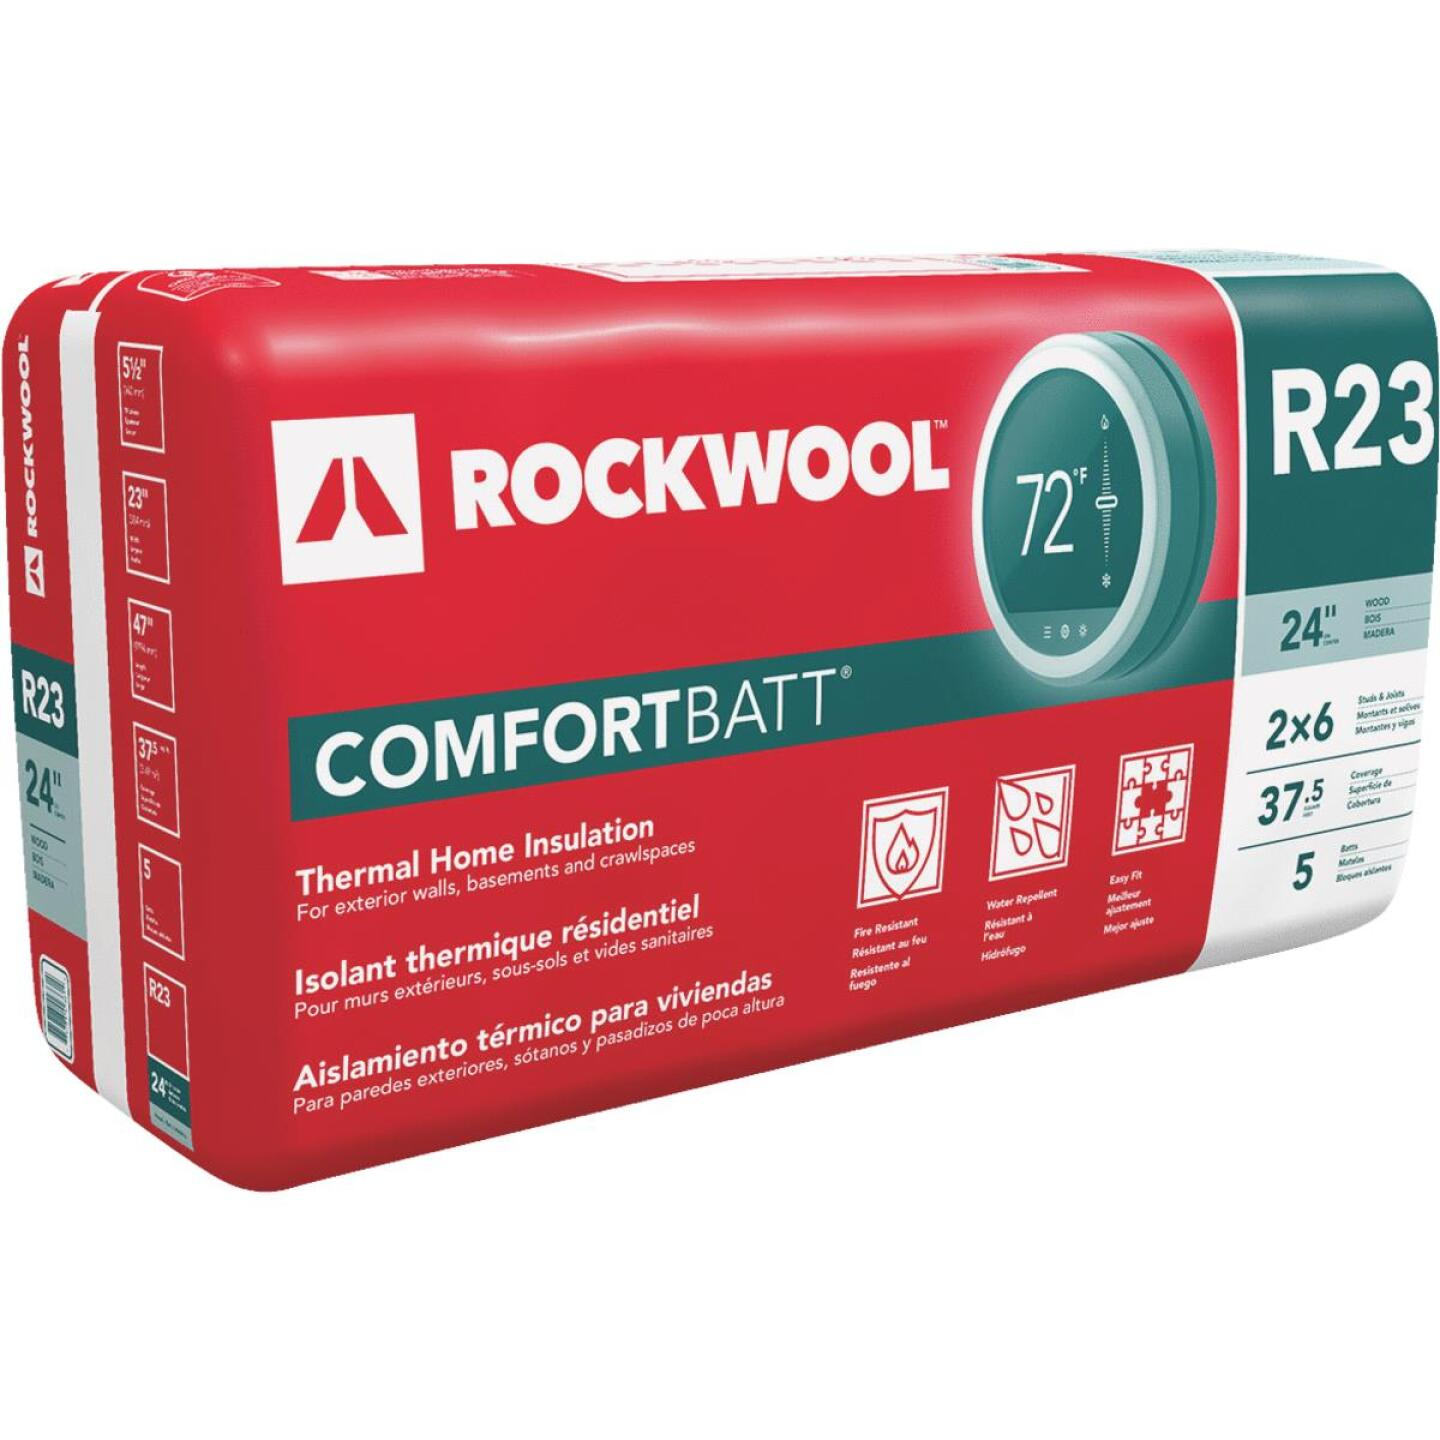 Rockwool Comfortbatt R-23 24 In. x 47 In. Stone Wool Insulation (5-Pack) Image 1